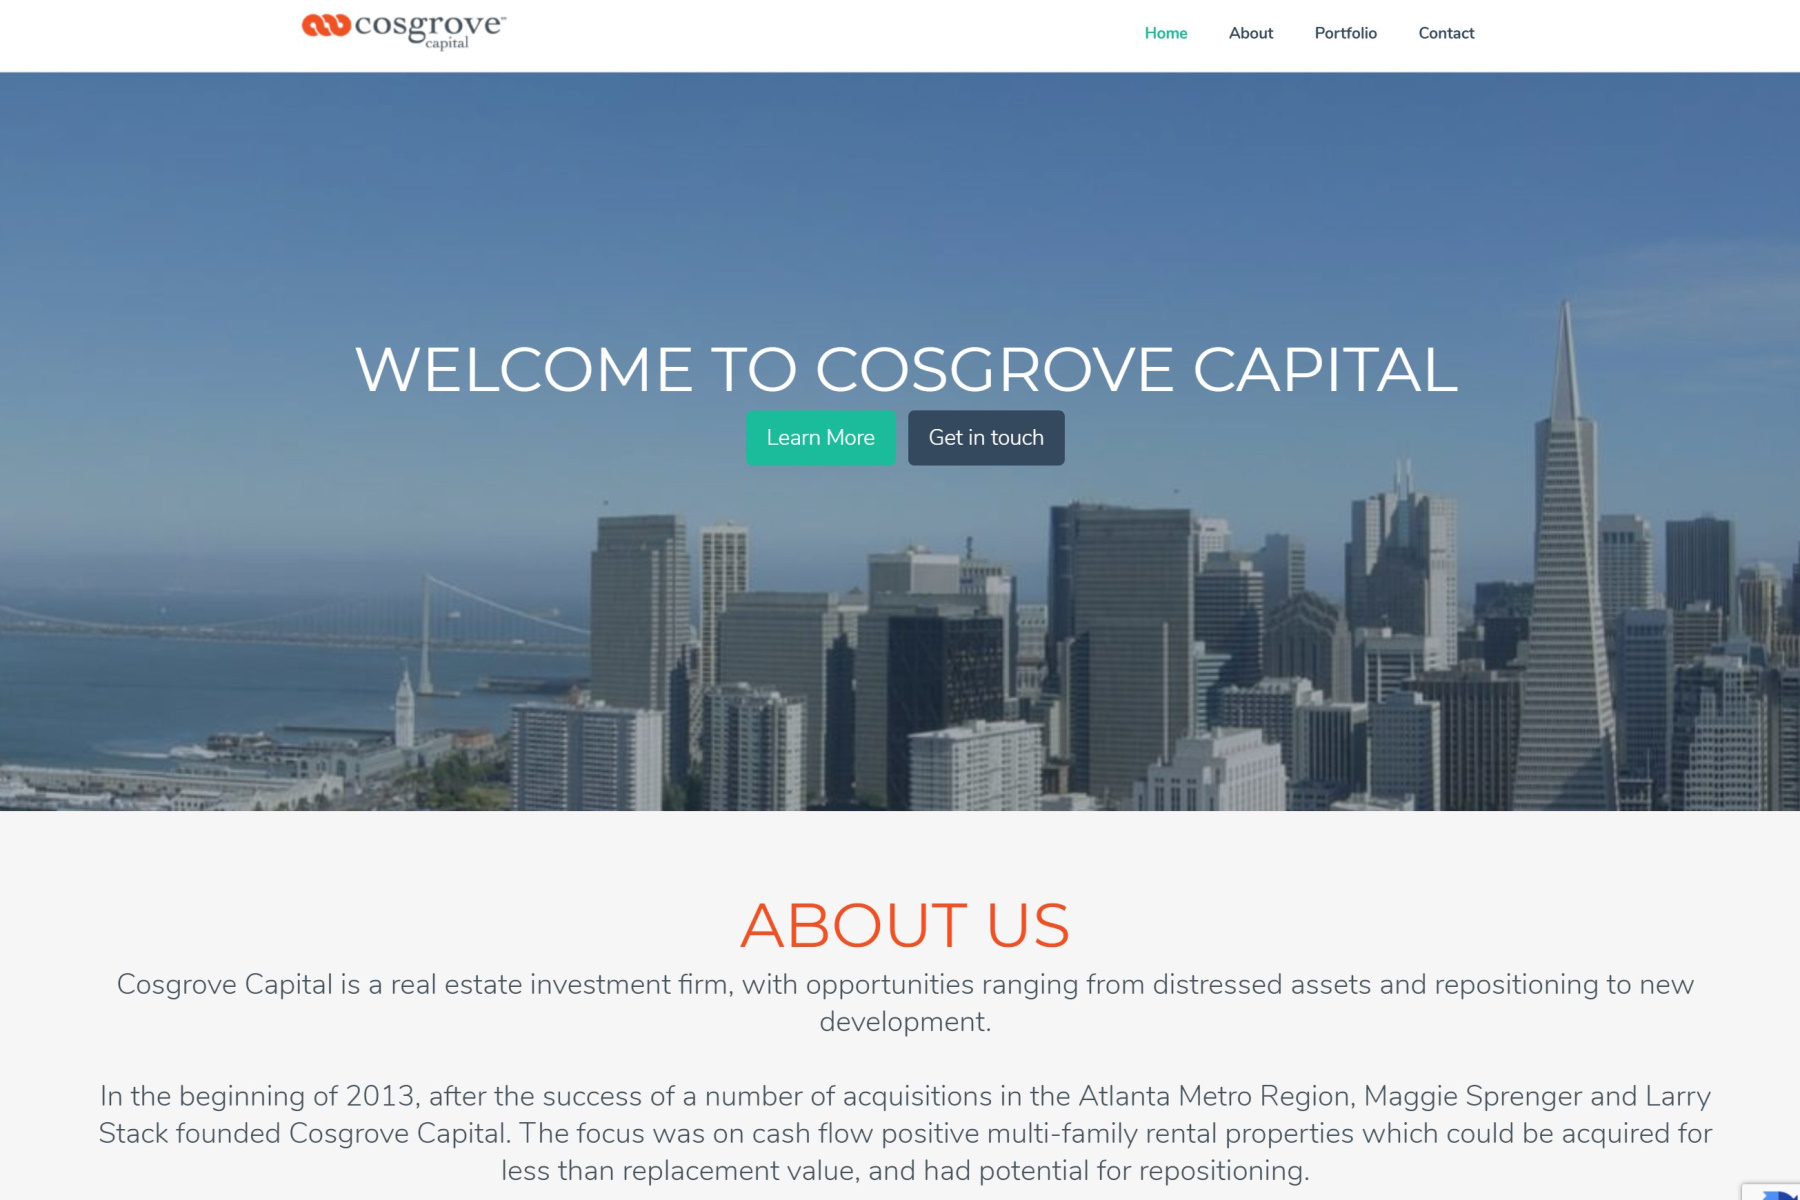 Cosgrove Capital